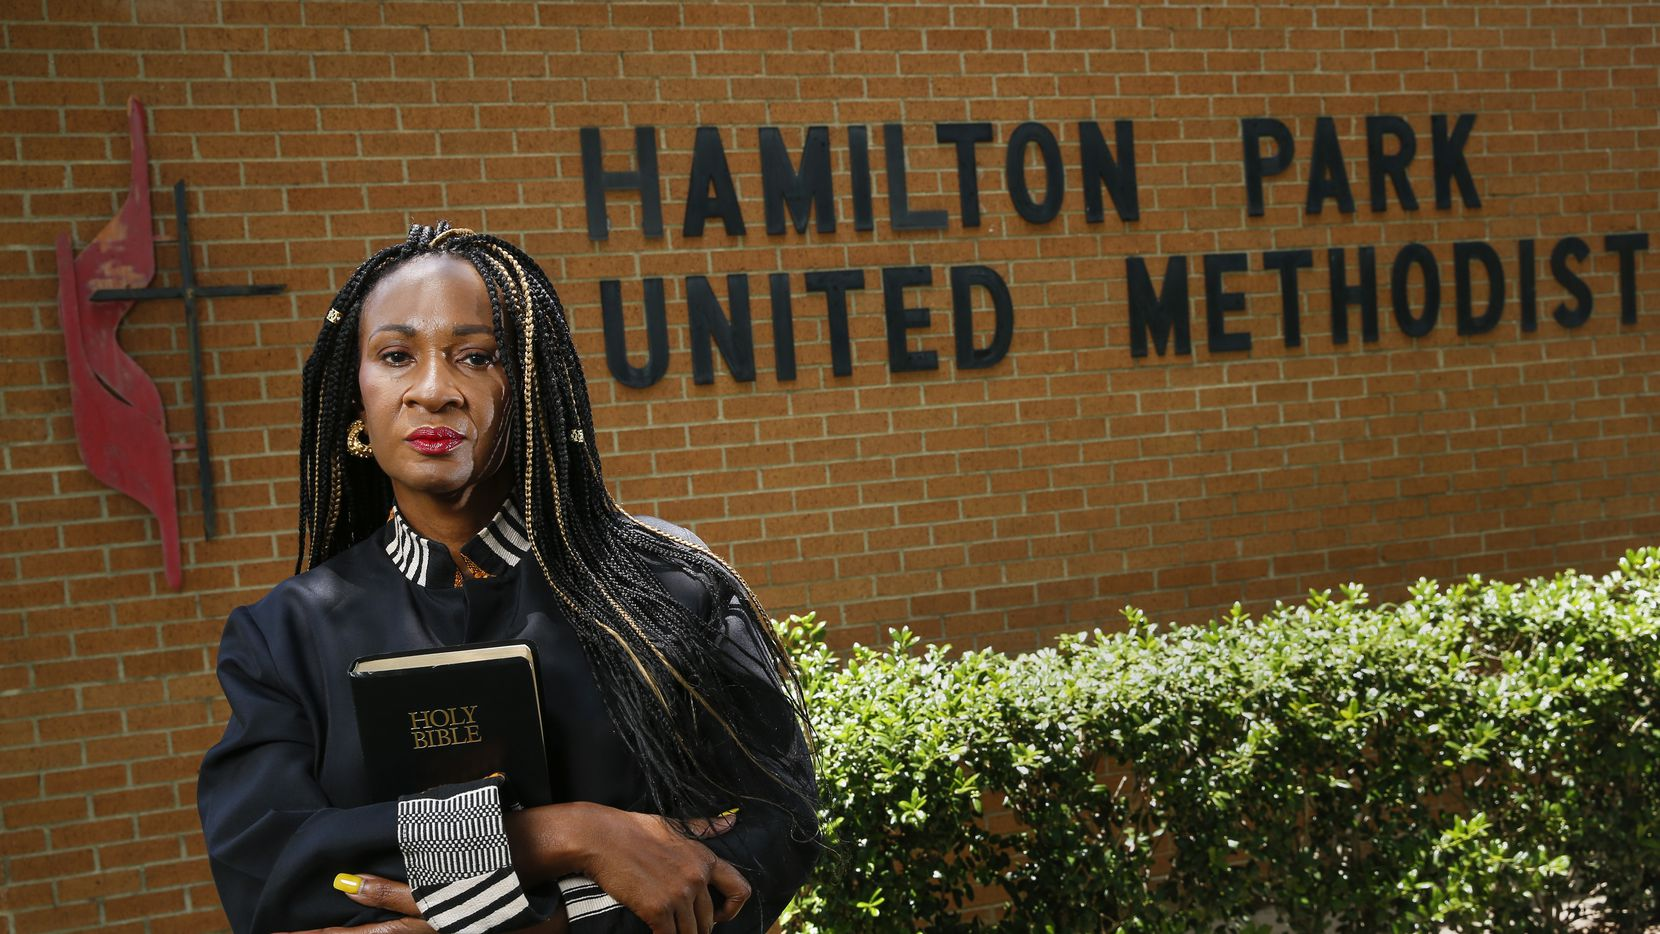 Senior Pastor Sheron Patterson  at Hamilton Park United Methodist Church on Wednesday, June 3, 2020 in Dallas.